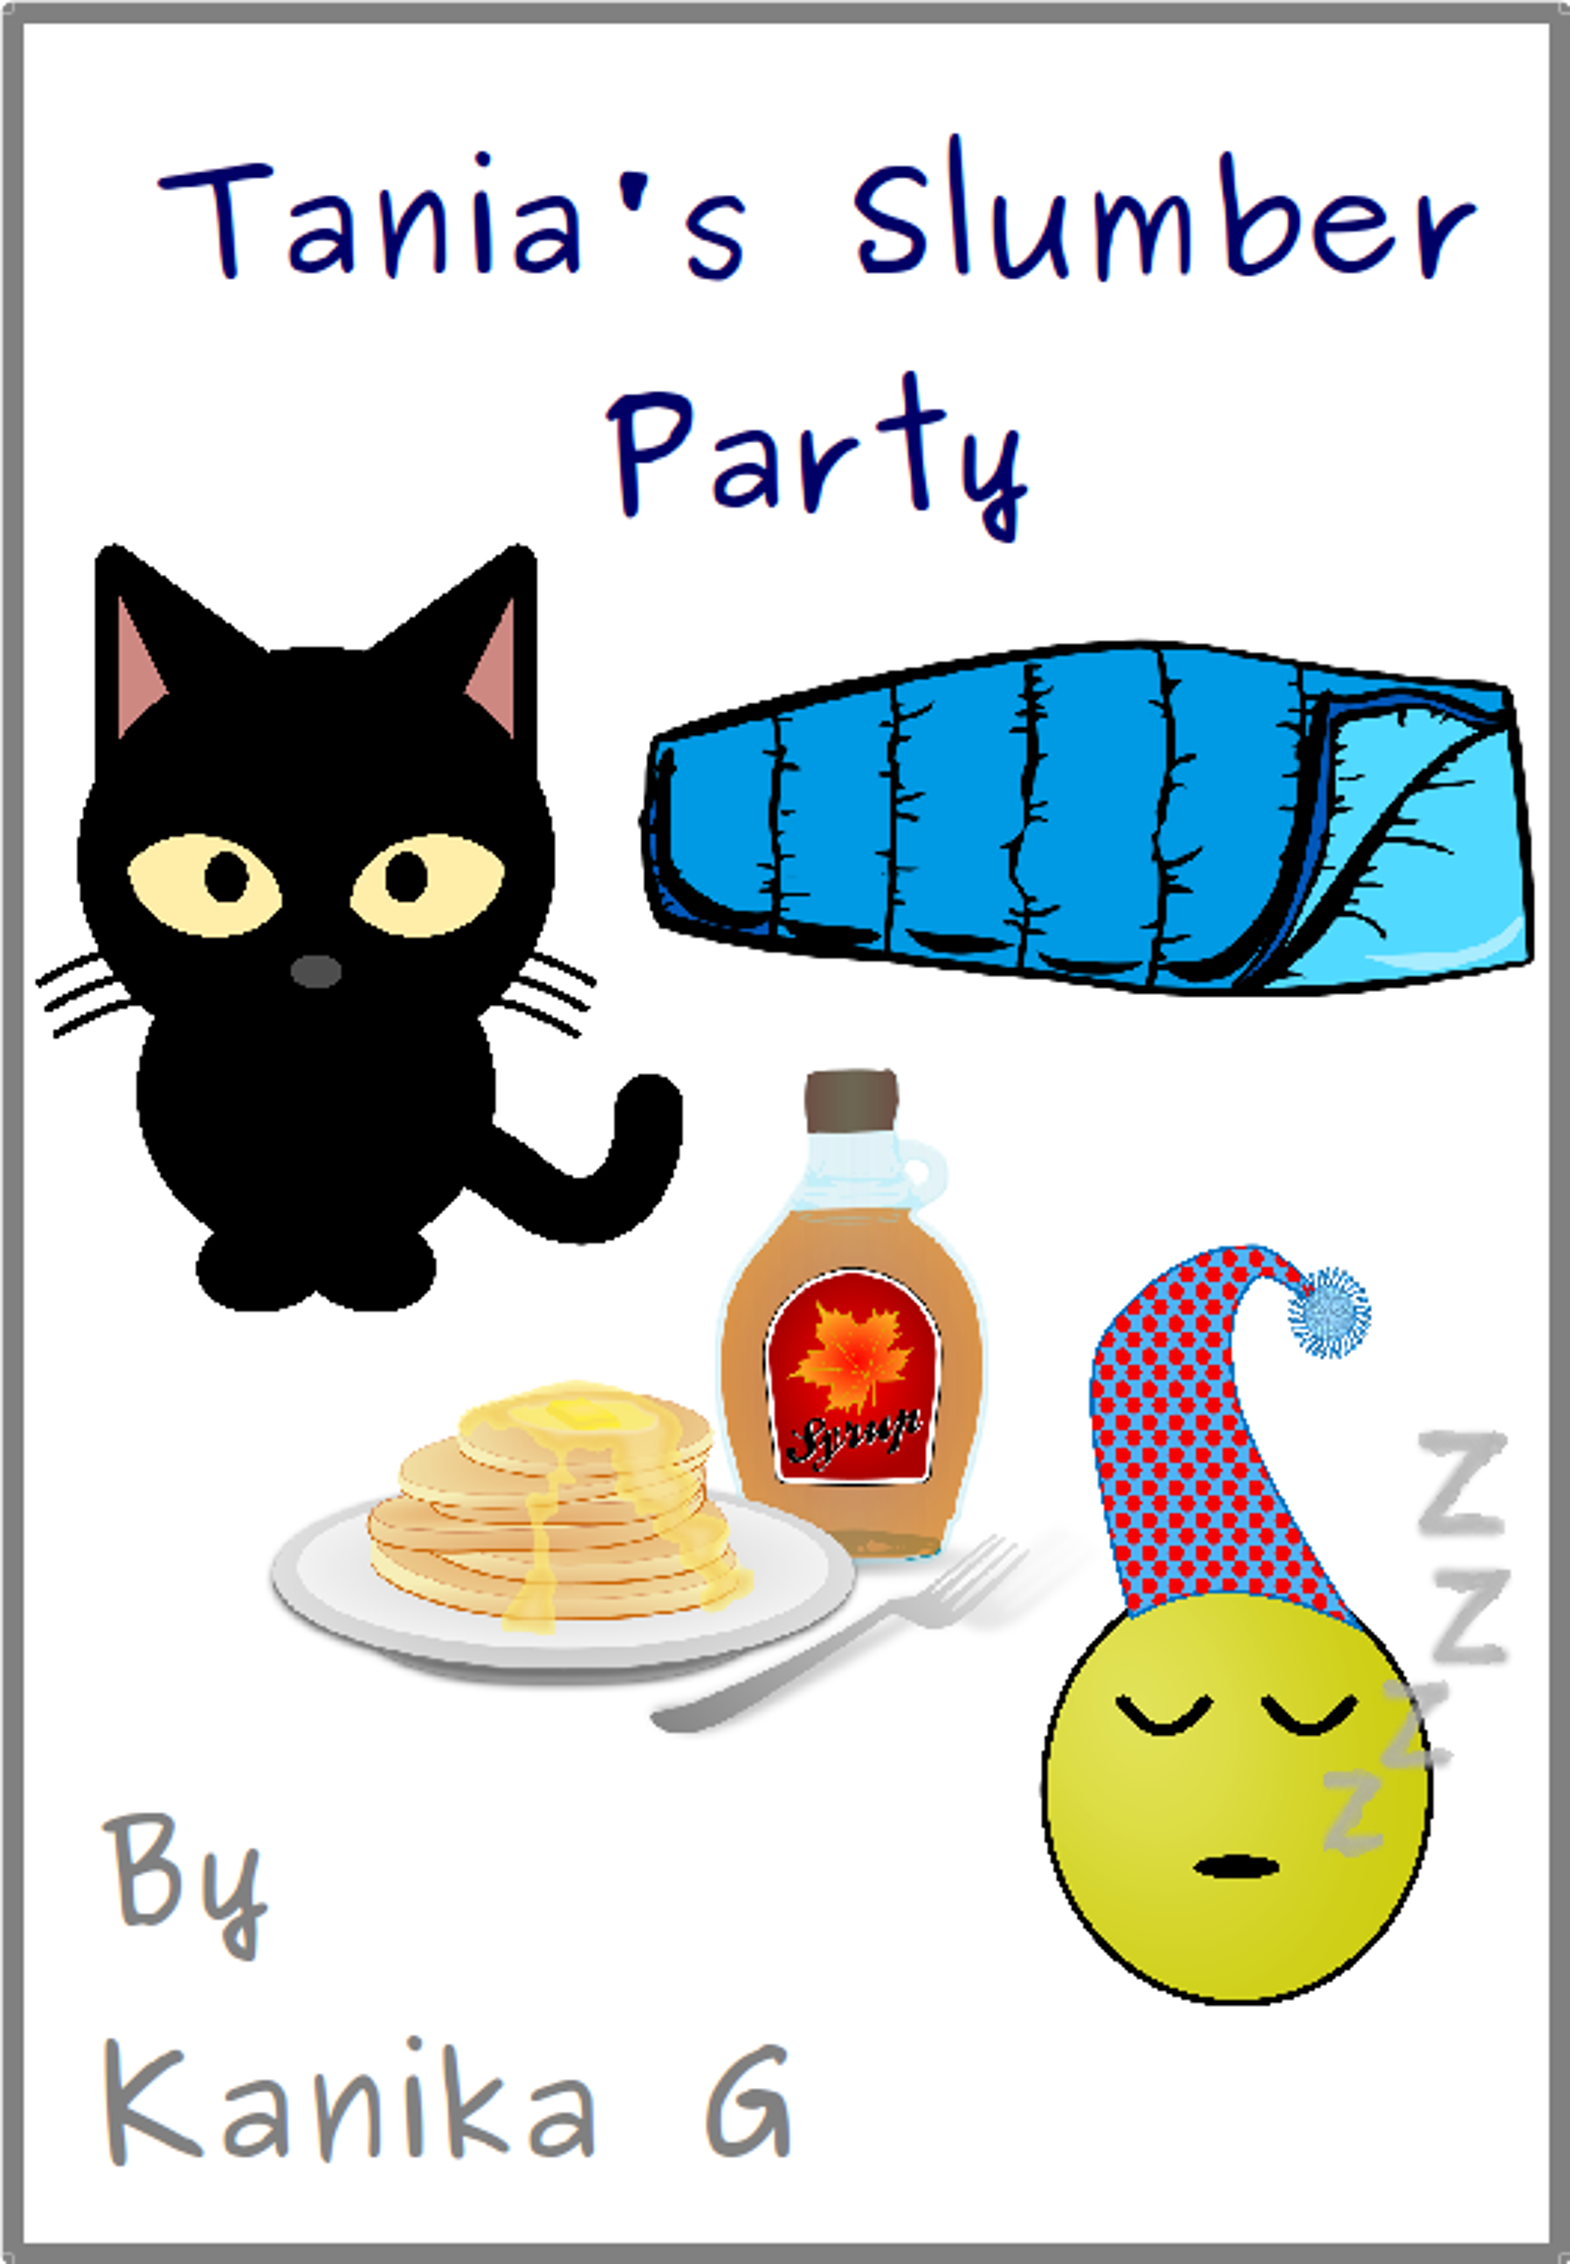 Tania's Slumber Party by G, Kanika